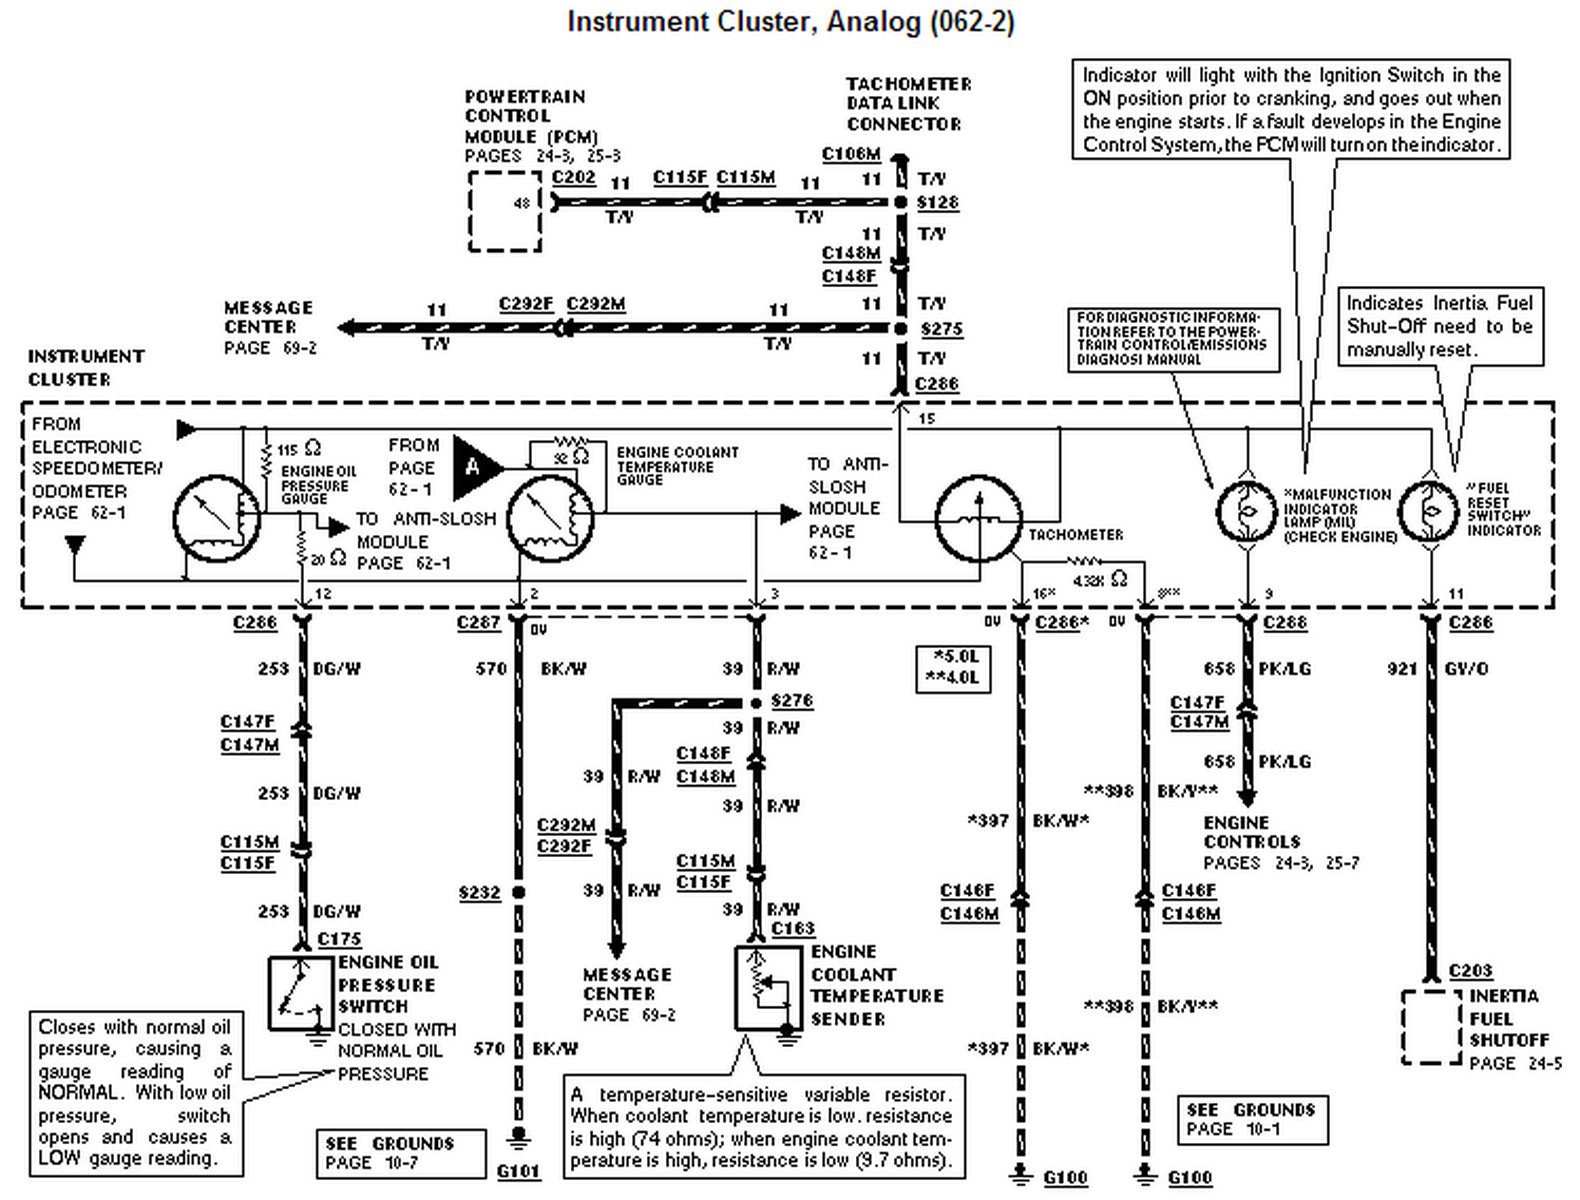 pic 5734001667949674903 1600x1200 jpeg light control module wiring diagram diagram ford explorer questions 2013 explorer base electrical issue 1580 x 1200